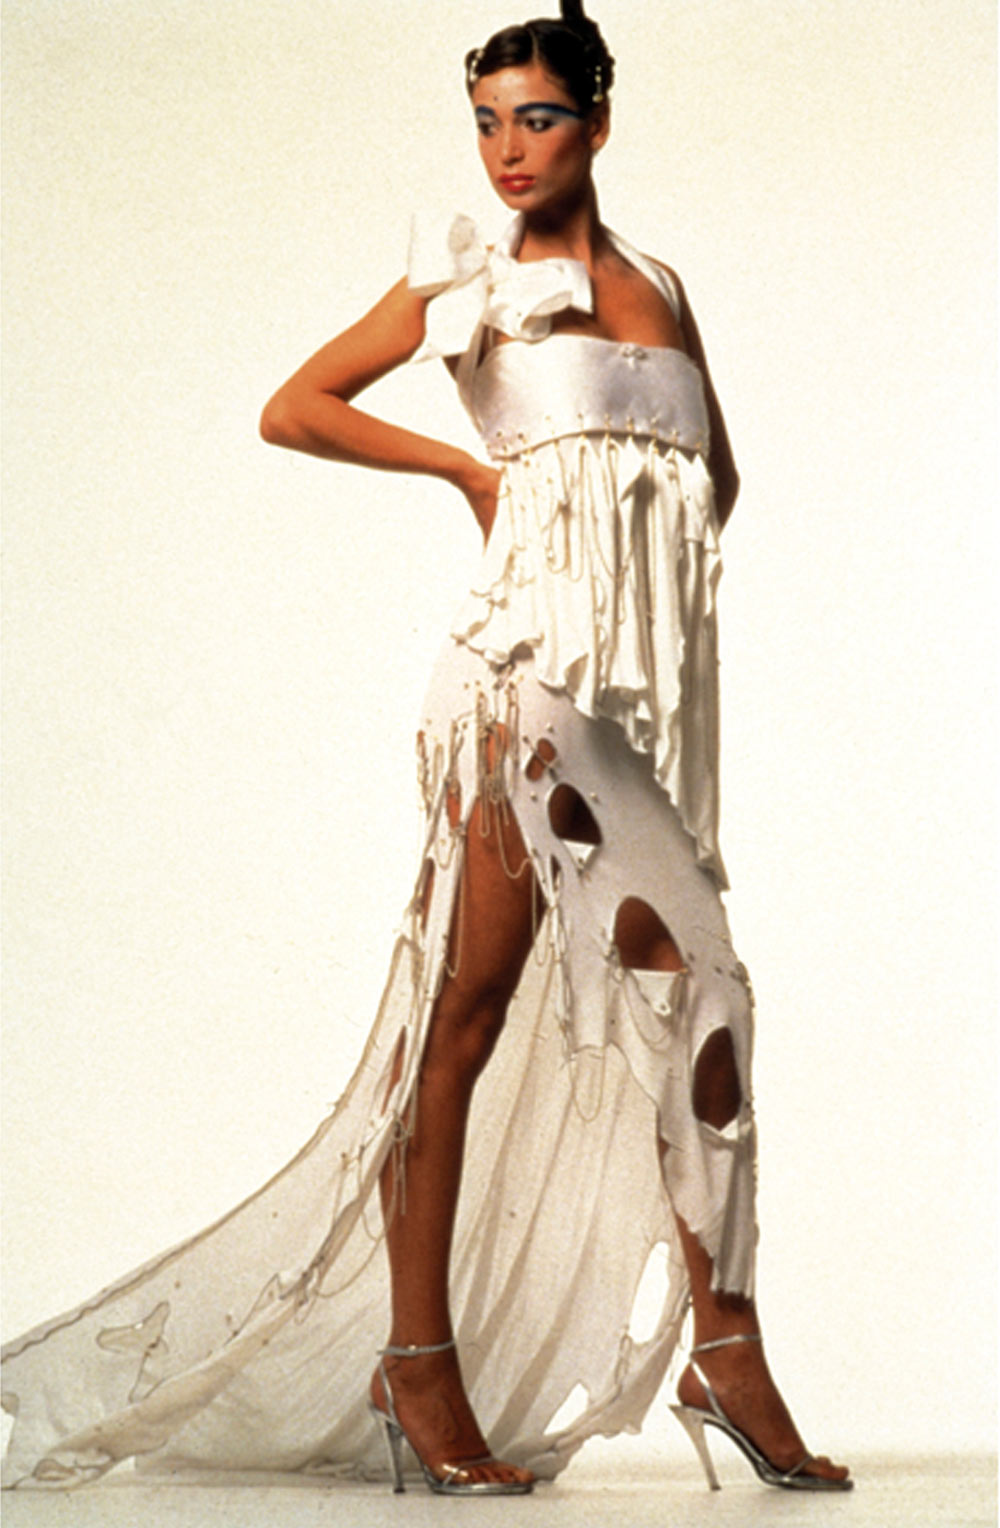 Punk wedding dress in collection of Metropolitan Museum New York. Photographed by Clive Arrowsmith